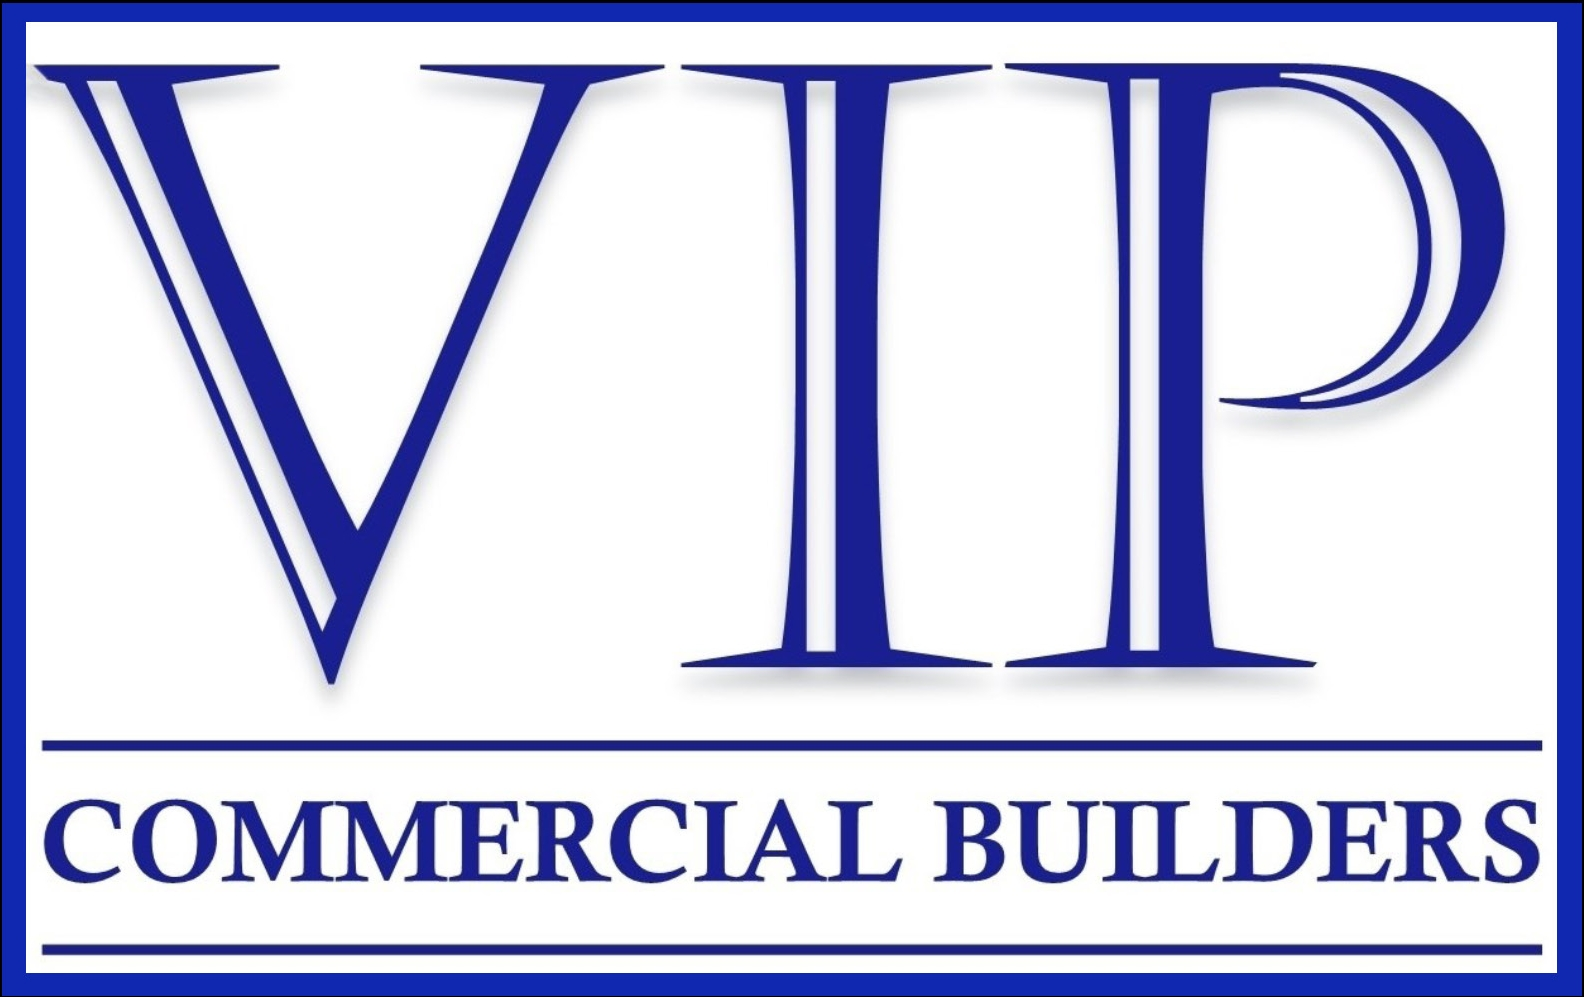 VIP Commercial Builders